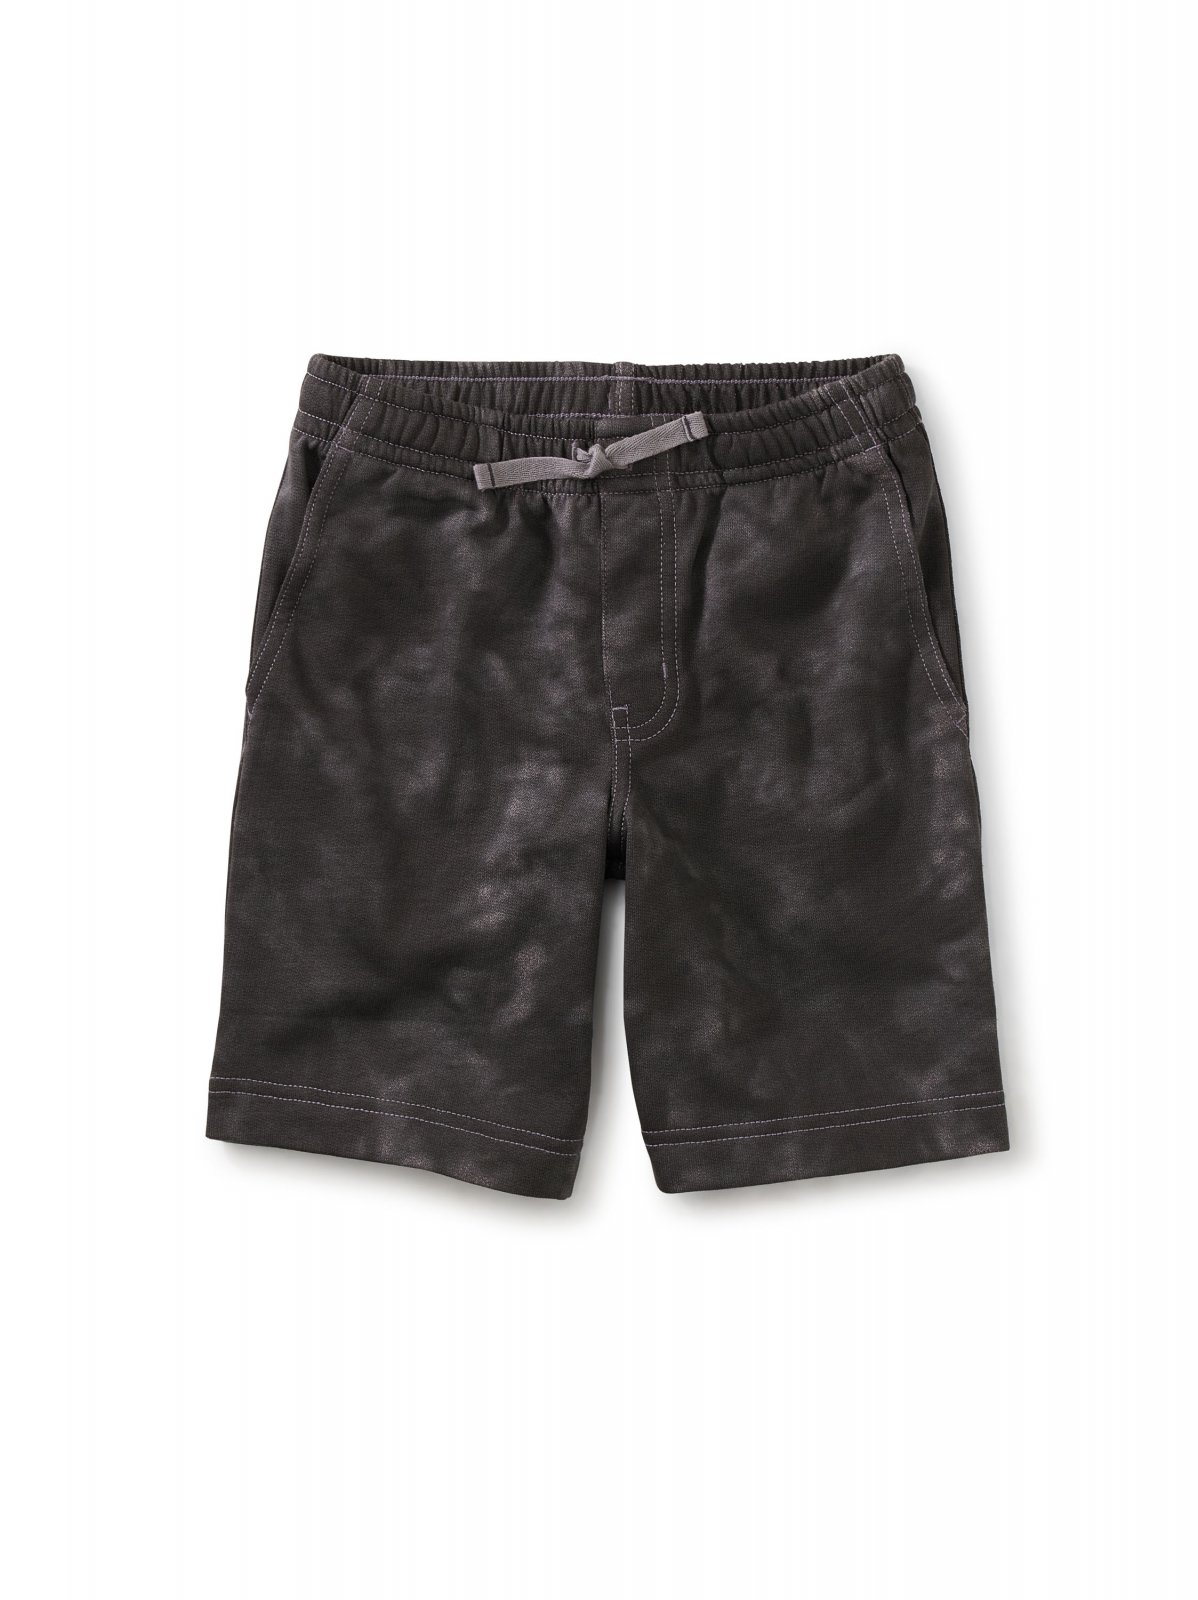 Boys Vacation Shorts in Grout Tie Dye by Tea Collection